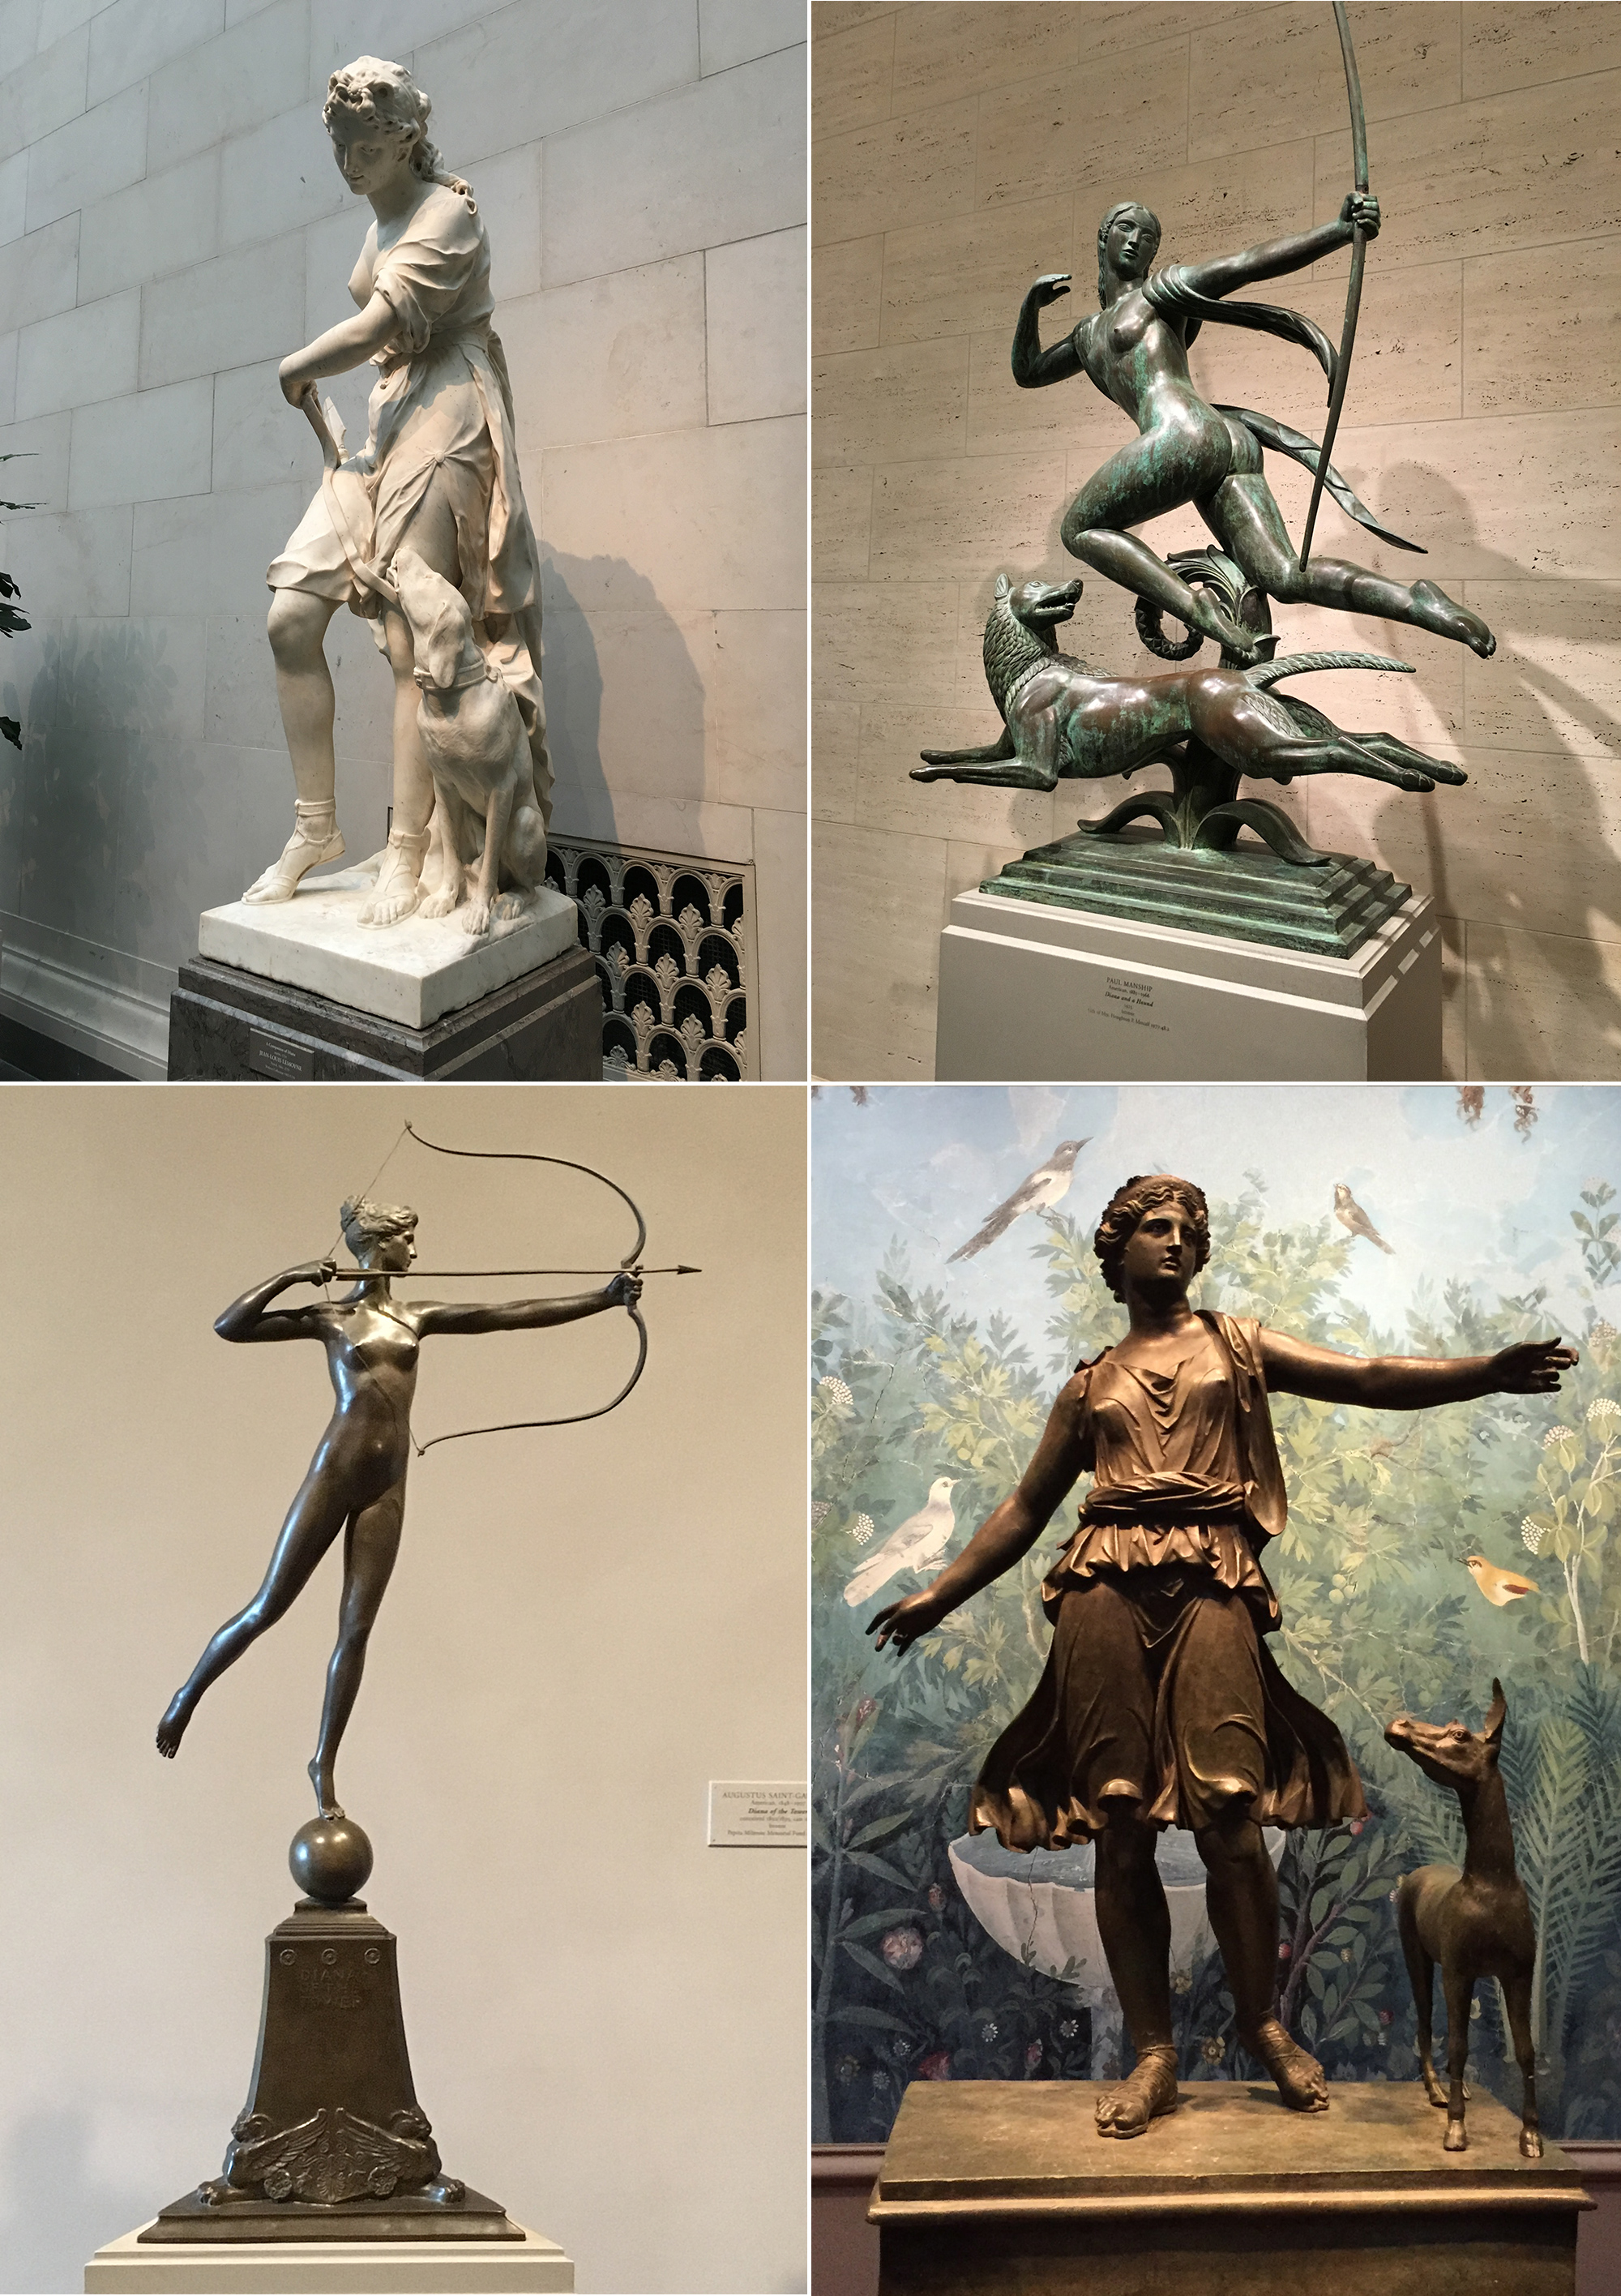 Statues of the goddess Artemis on display at the National Gallery in Washington DC